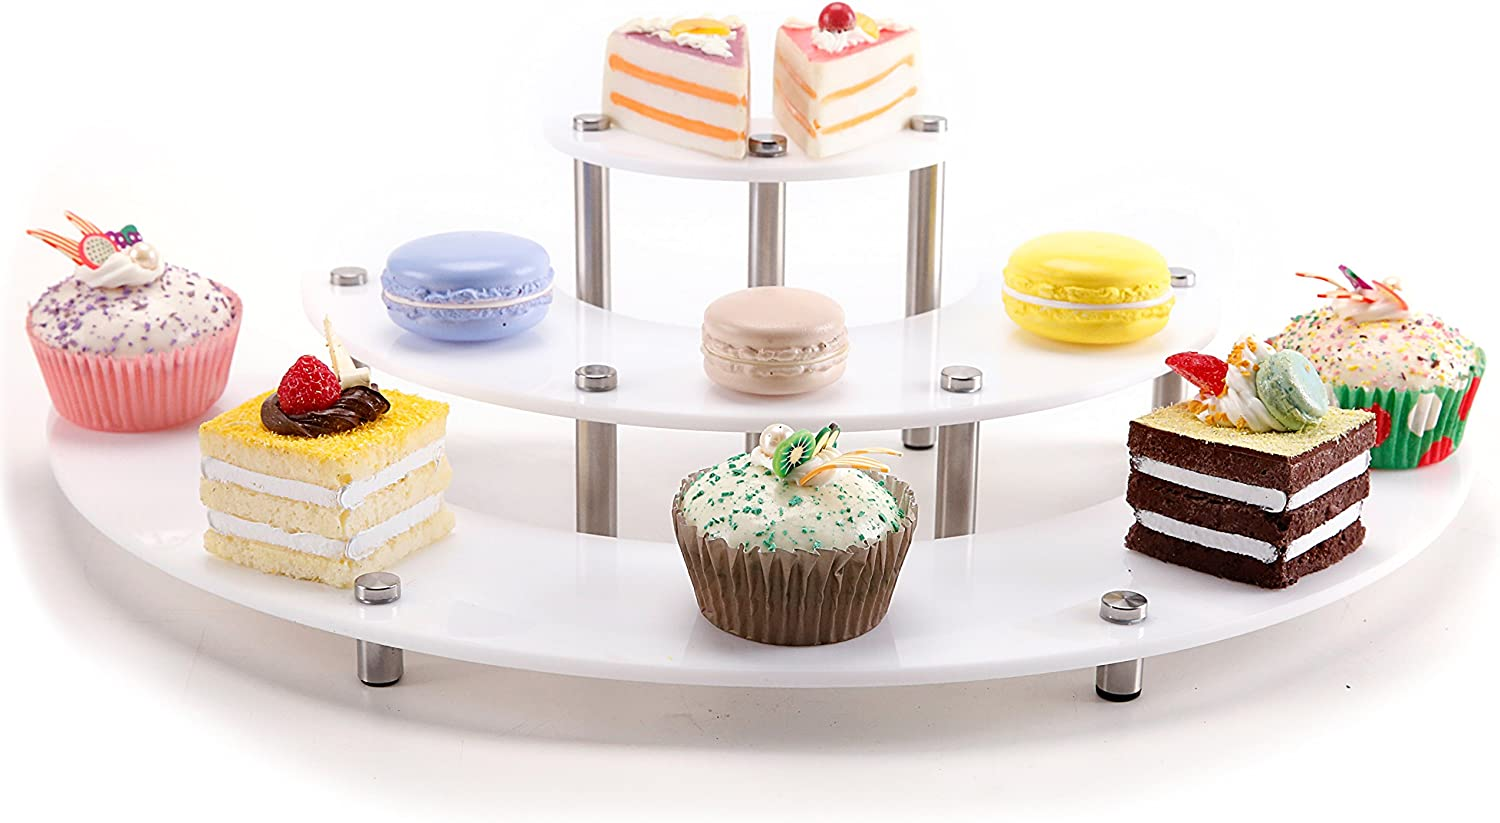 MyGift 3-Piece Set White Acrylic Semicircle Server Cupcake Dessert Display Stand, Tabletop Collectible Showcase Risers